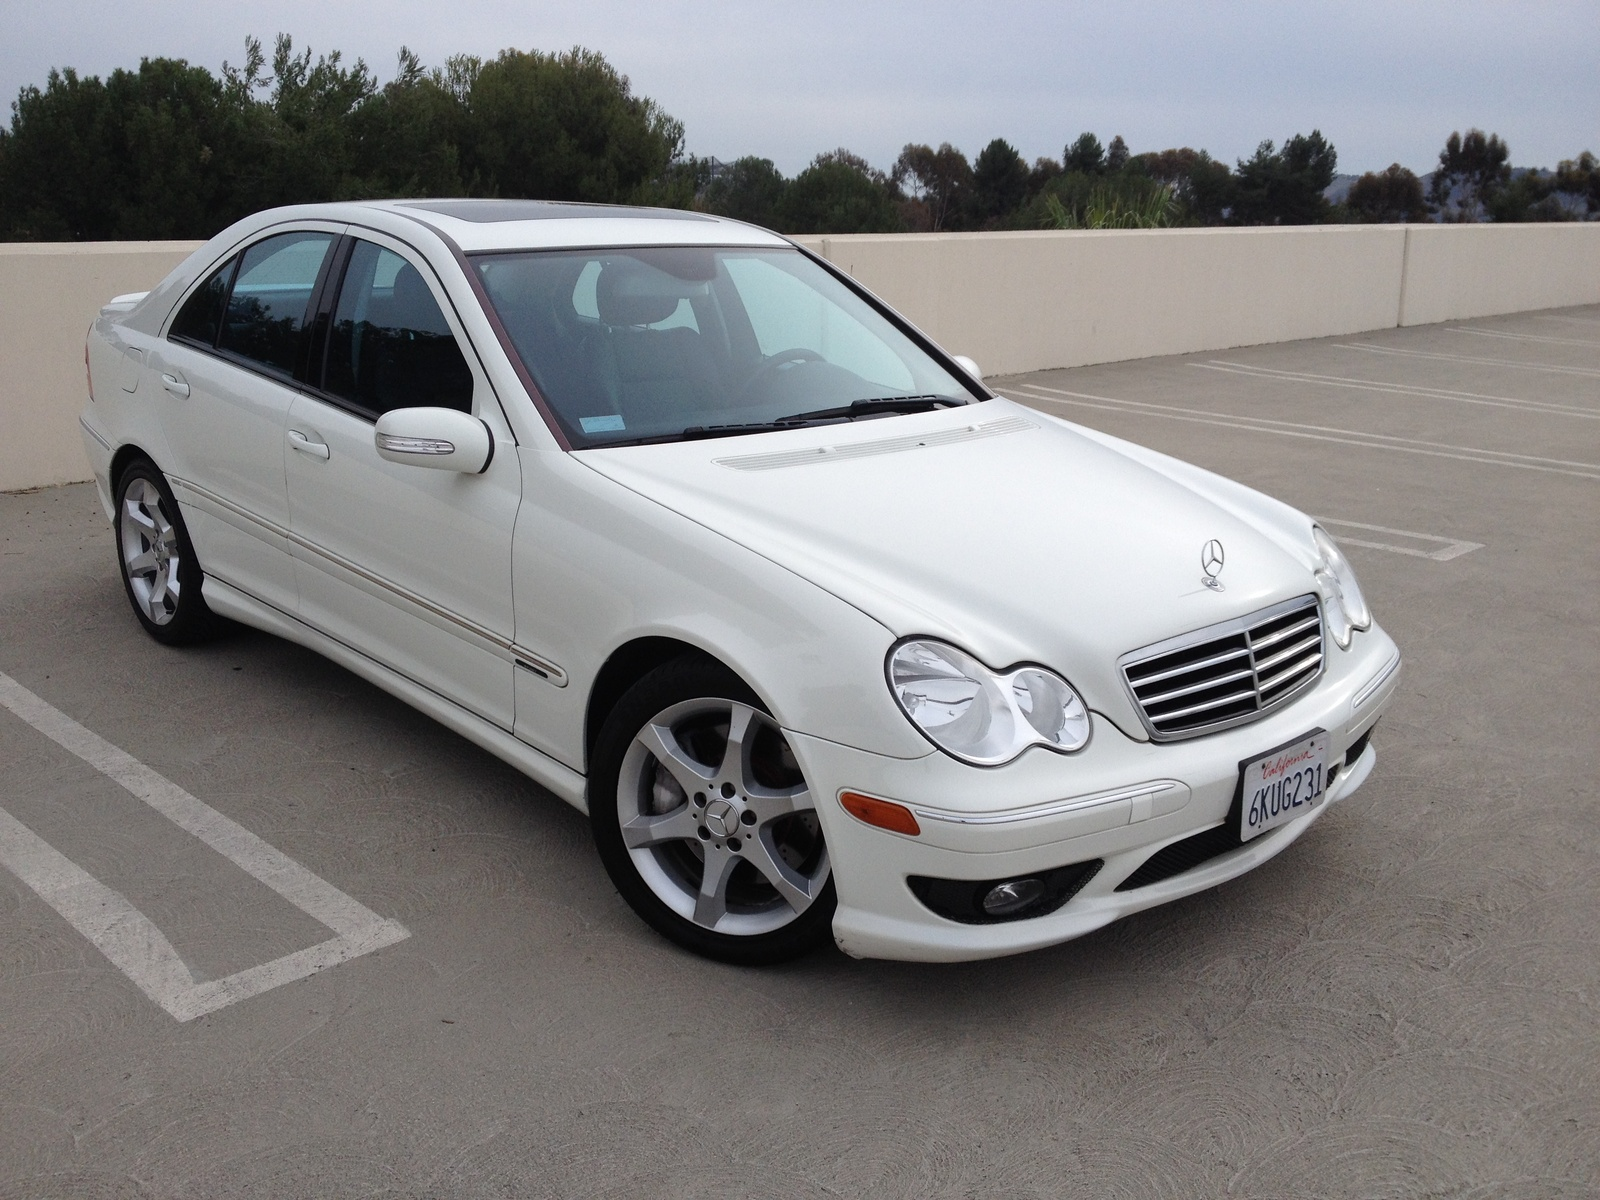 2007 mercedes benz c class pictures cargurus for 2007 mercedes benz suv